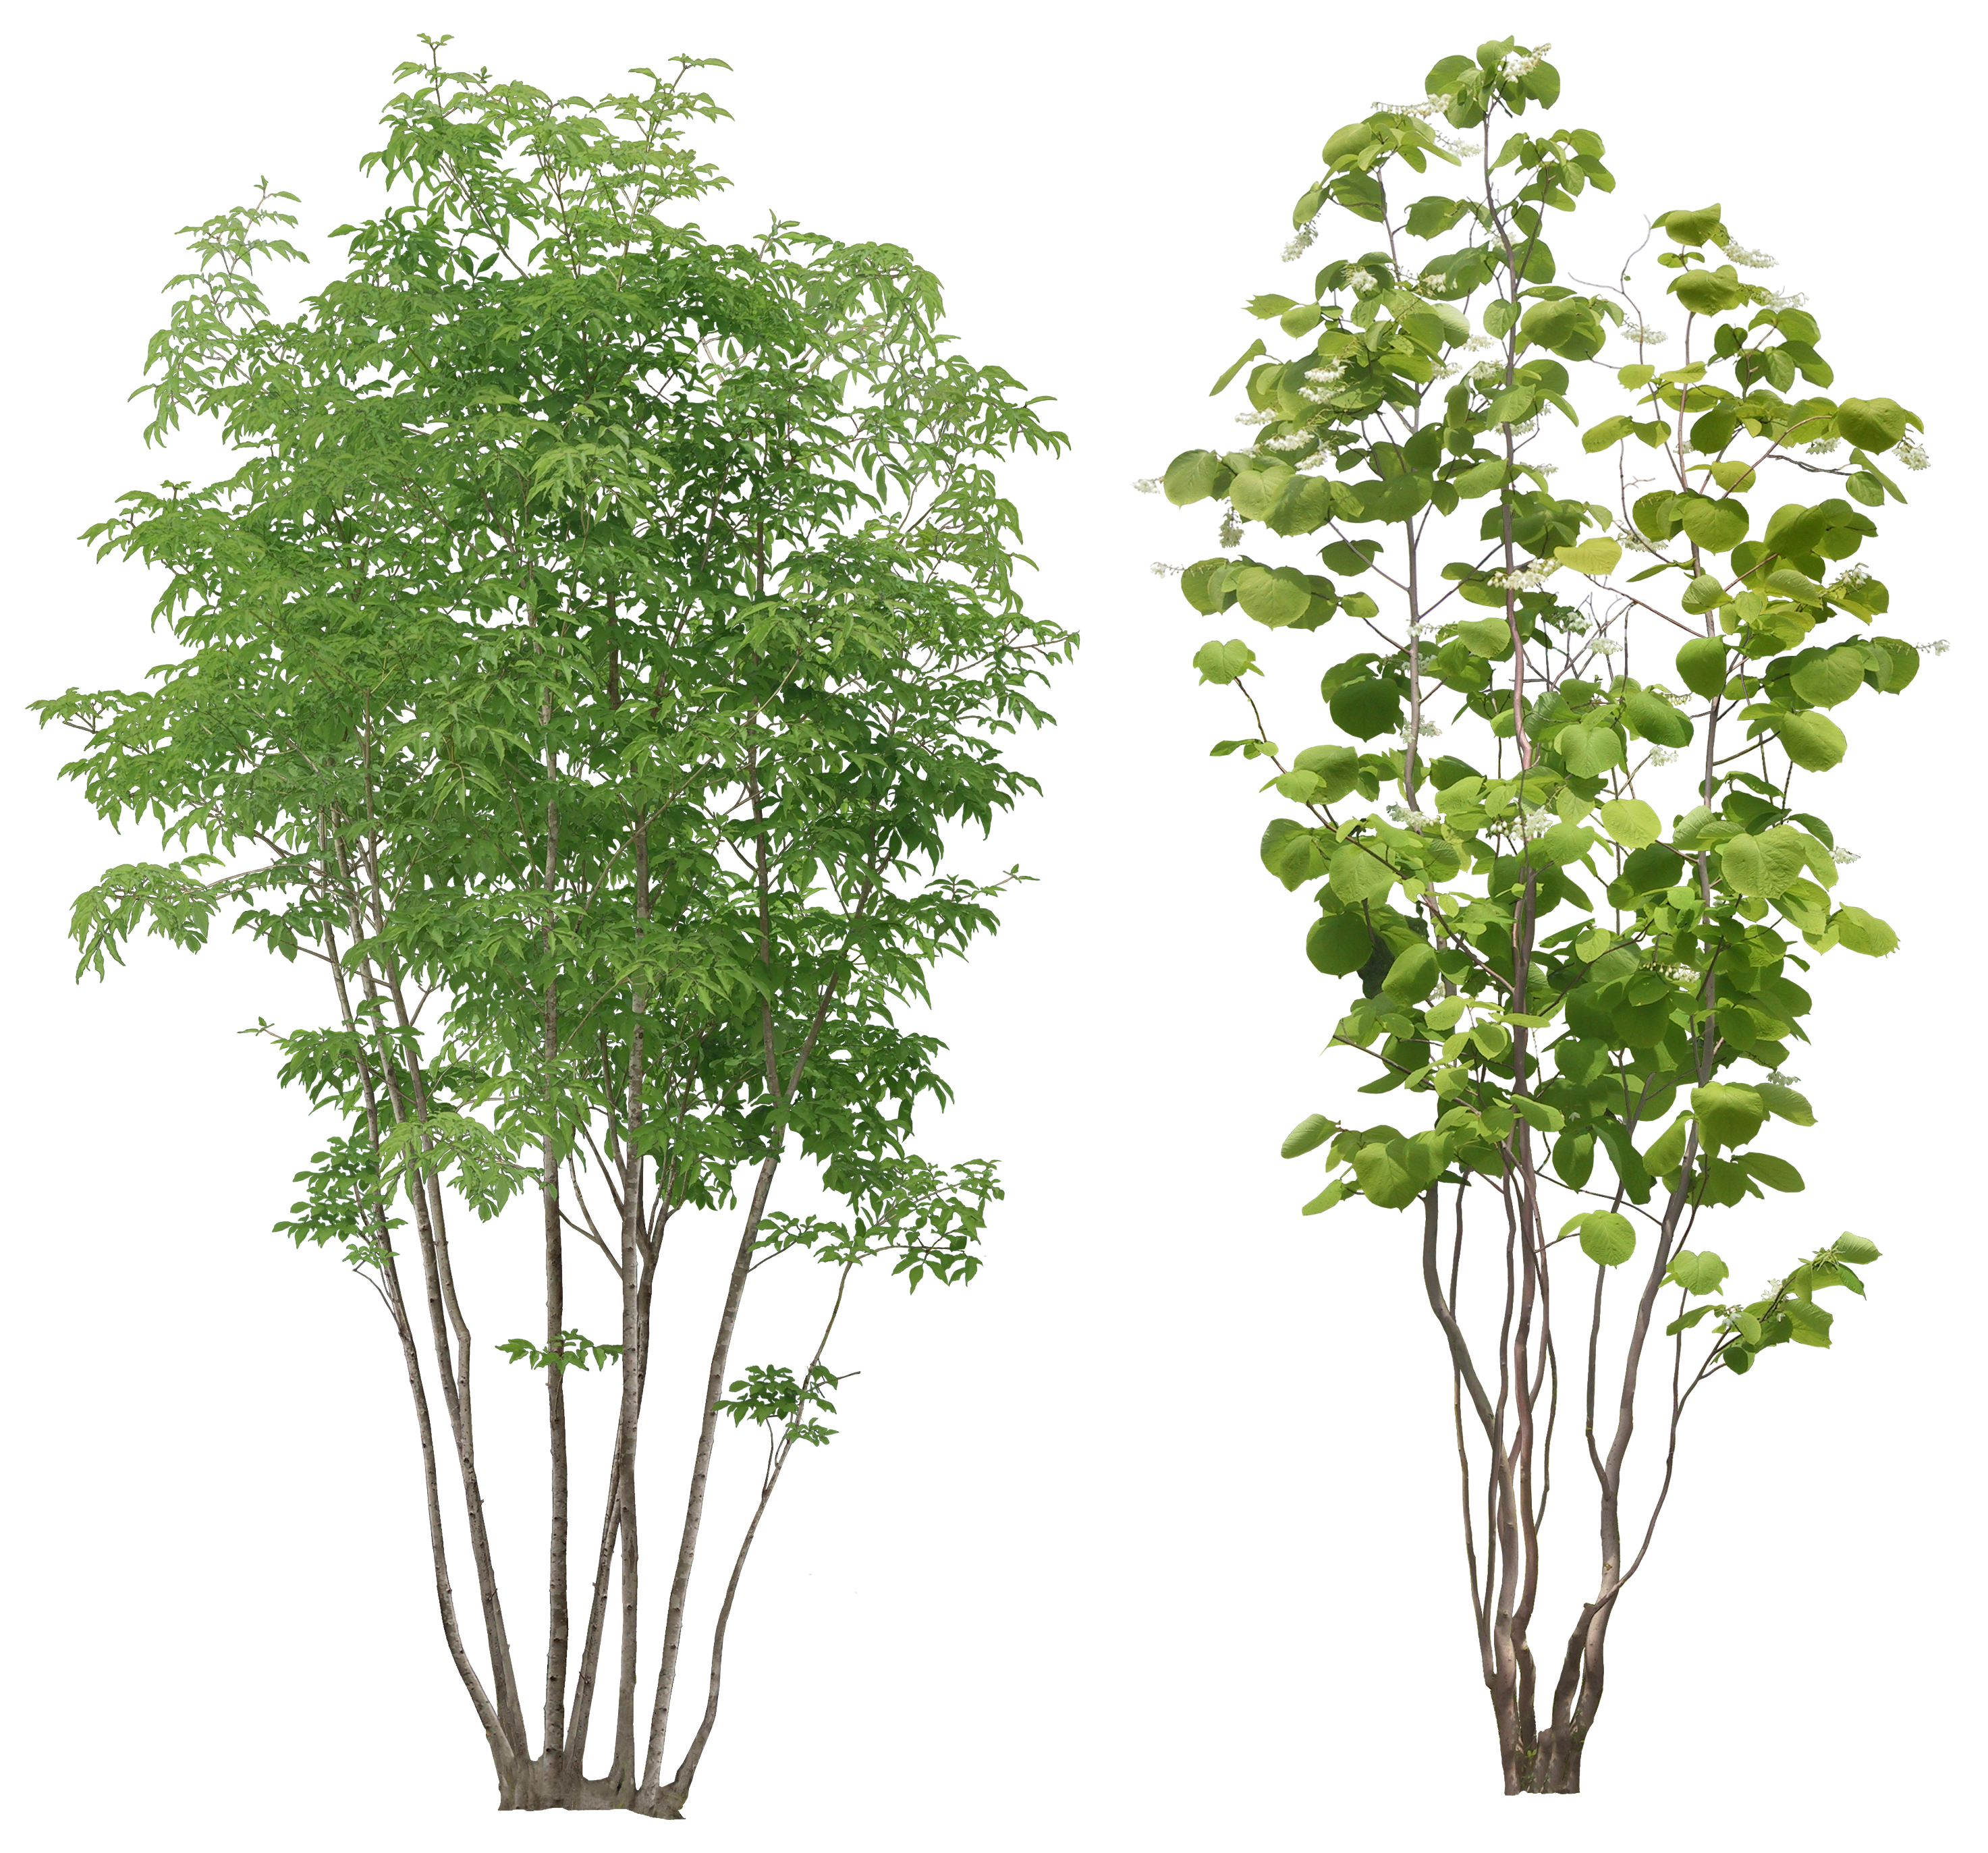 tree png image - Plants PNG